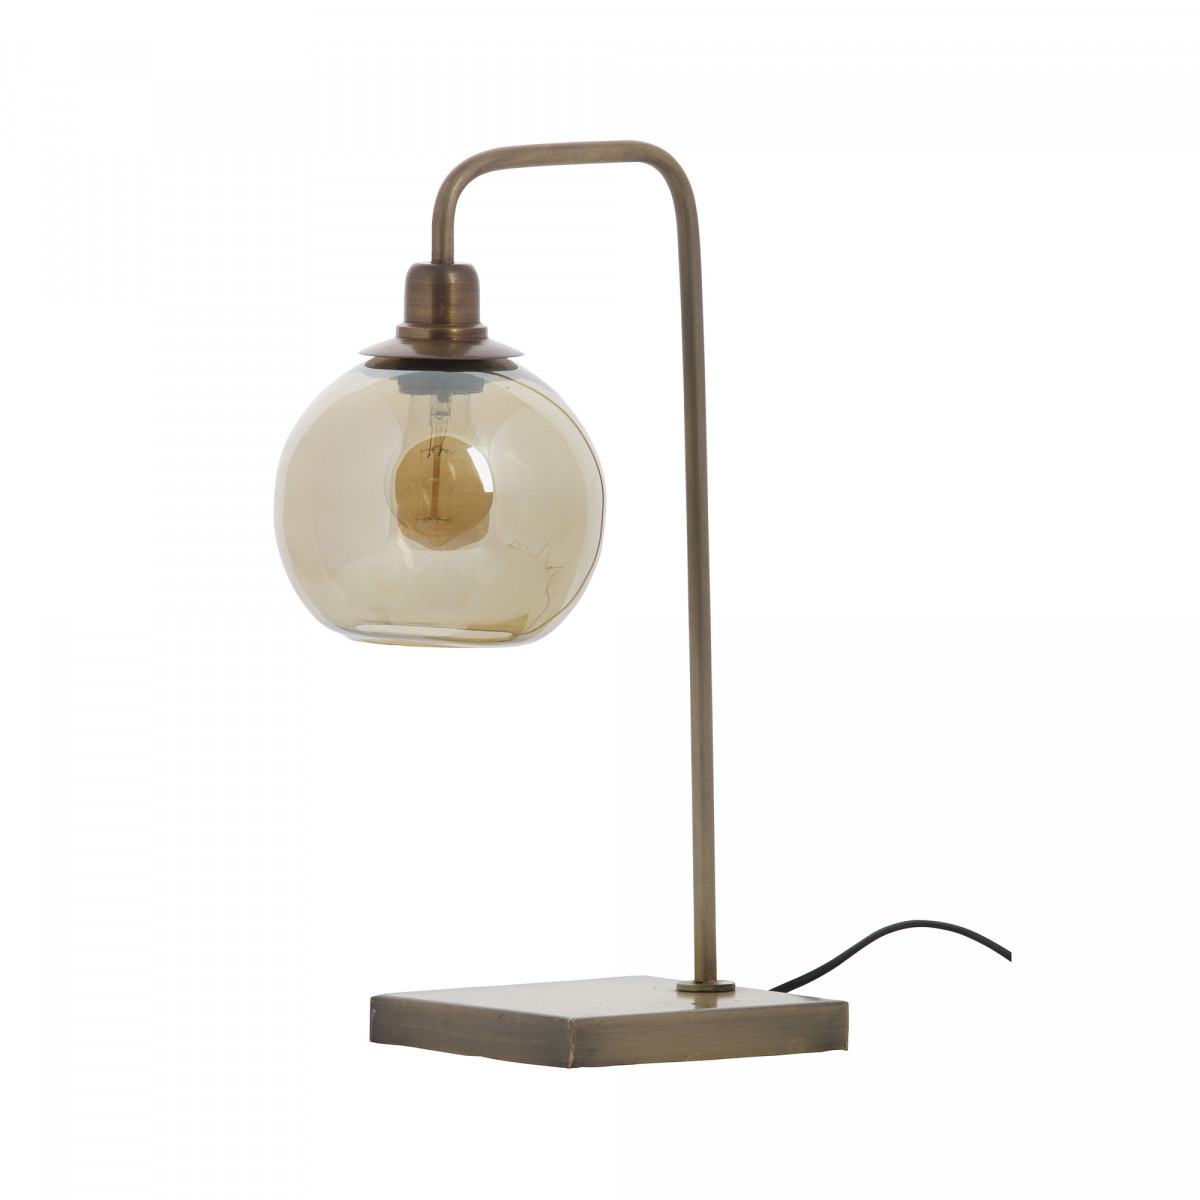 Tafellamp Lantern metaal antique brass